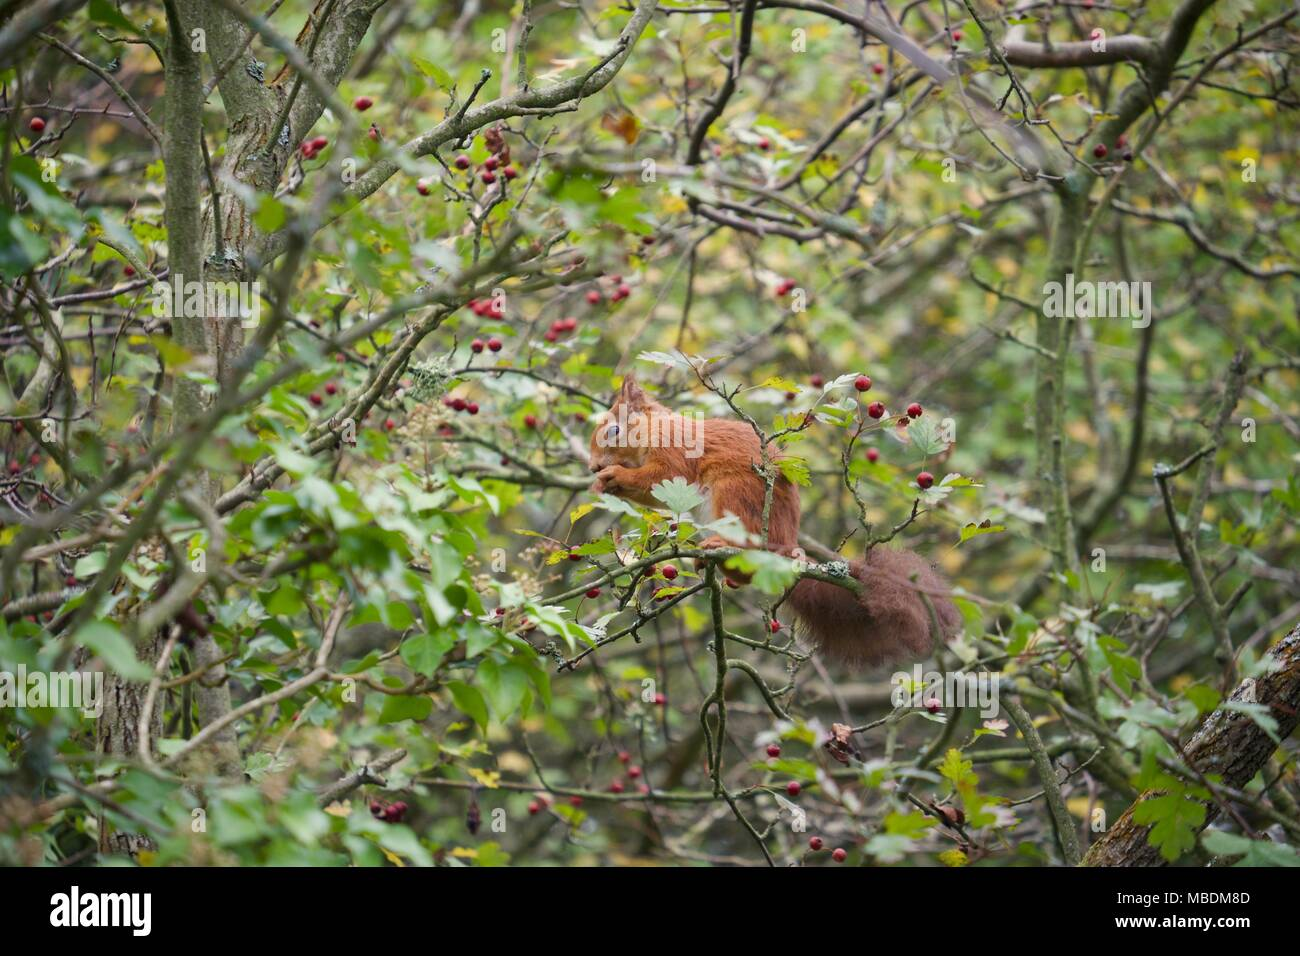 Eurasian Red Squirrel in a tree eating in Fort Victoria Country Park on the Isle of Wight - Stock Image